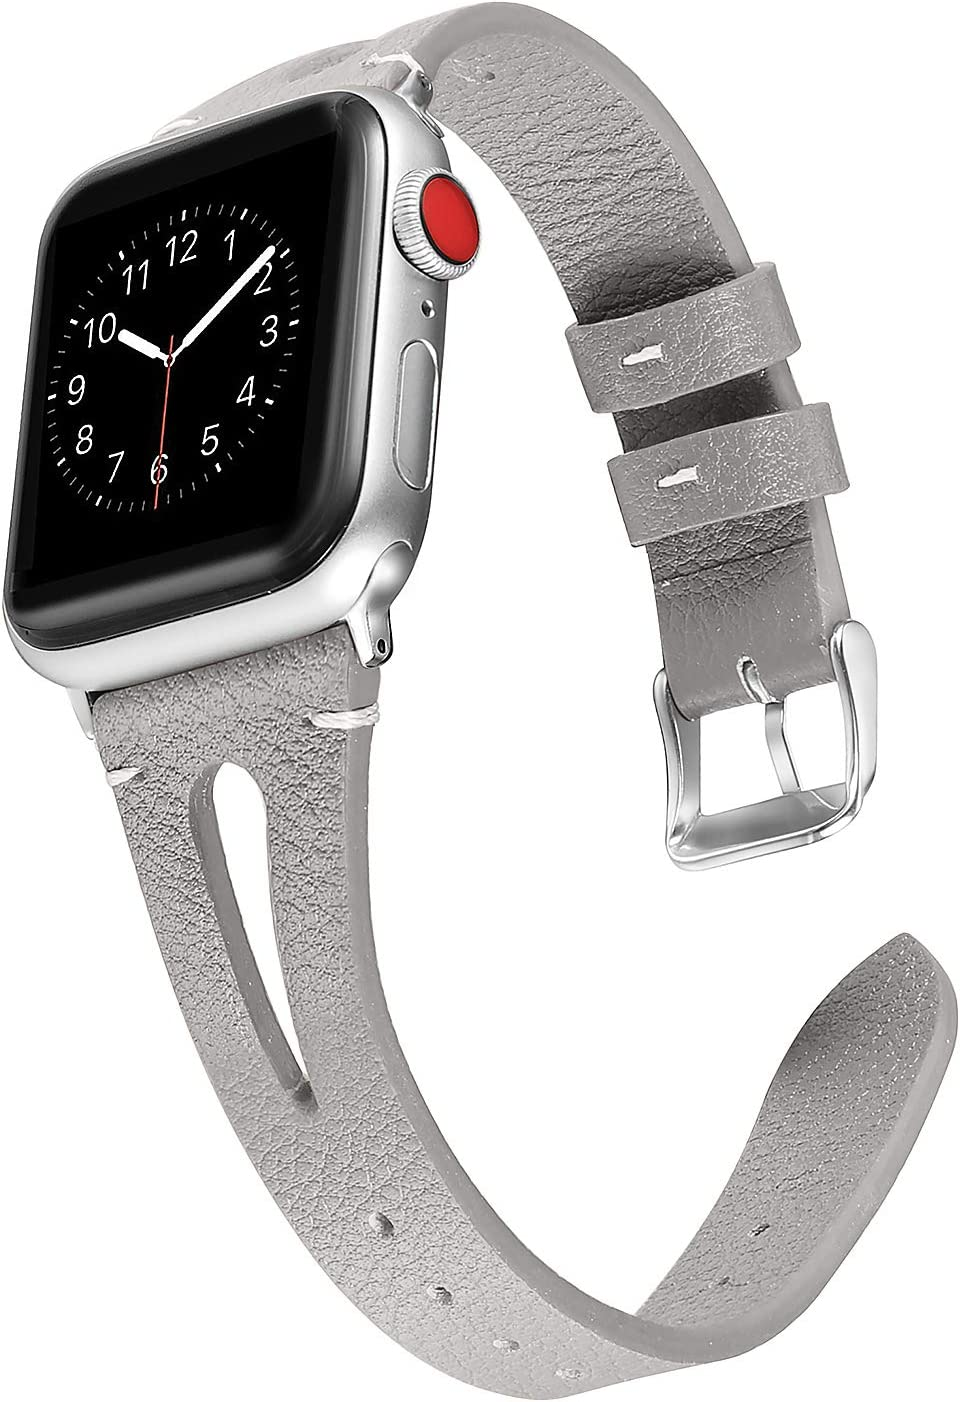 Secbolt Leather Bands Compatible with Apple Watch Band 38mm 40mm iwatch Series 5 4 3 2 1, Slim Strap with Breathable Hole Replacement Wristband Women